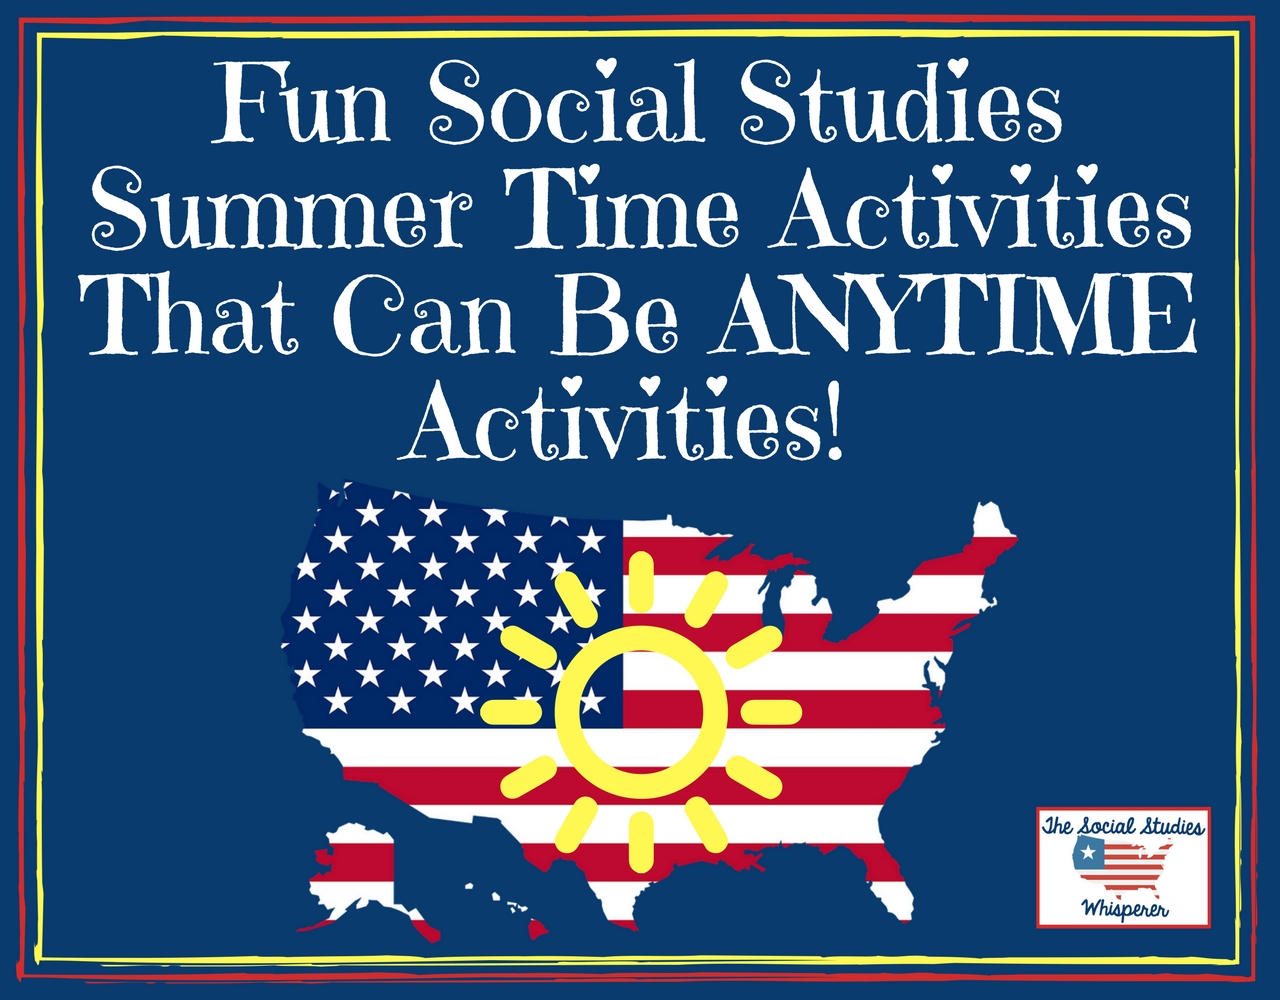 Fun Social Studies Activties to Keep Kids Busy This Summer Blab Show SSW